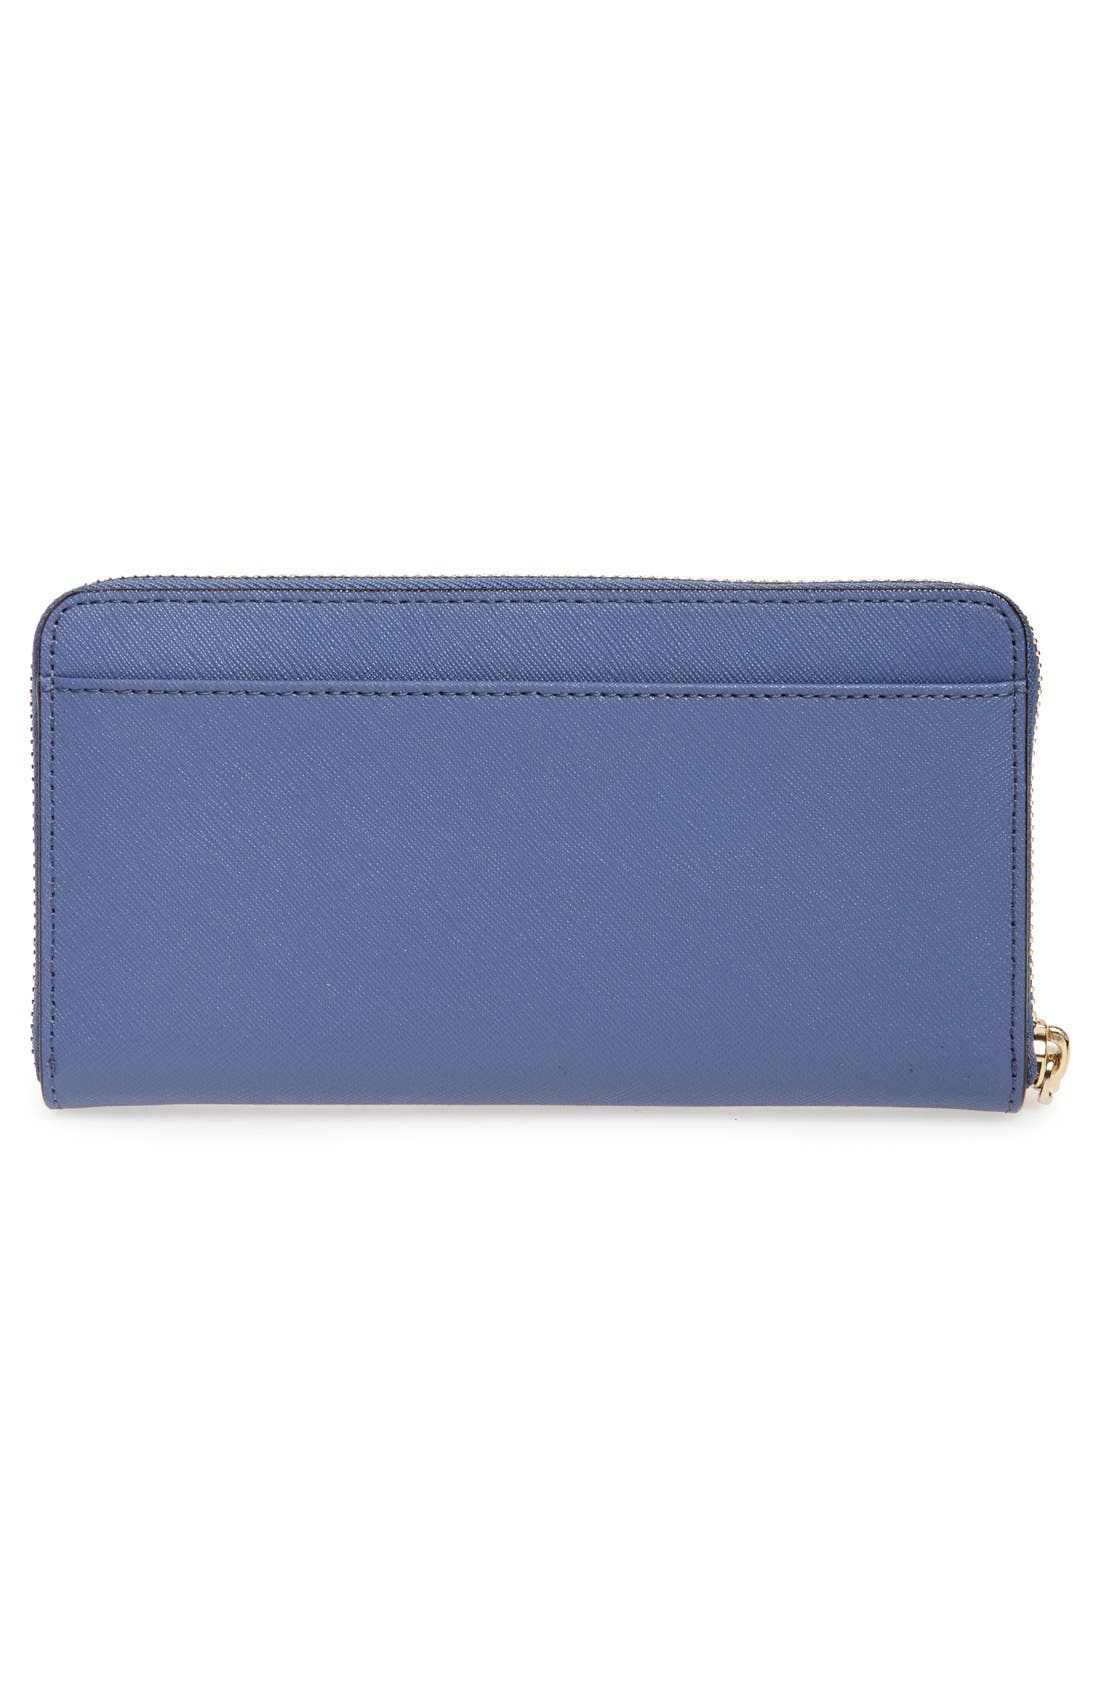 'cameron street - lacey' leather wallet,                             Alternate thumbnail 73, color,